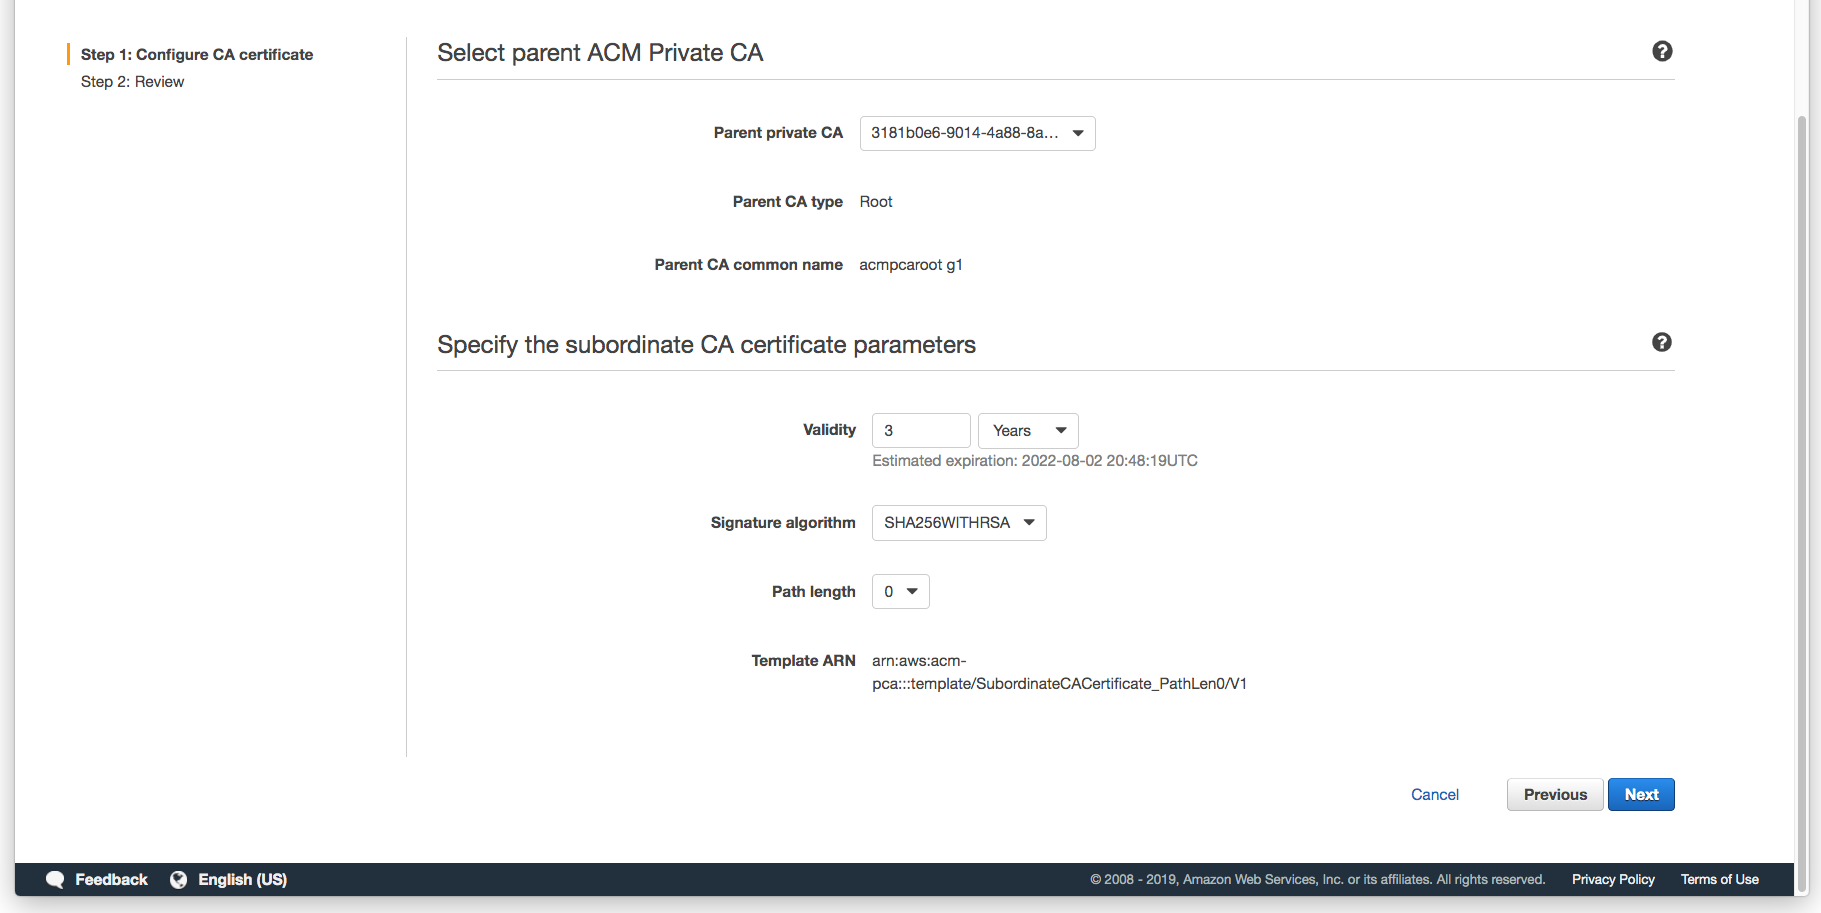 Figure 7: Specify the subordinate CA certificate parameters